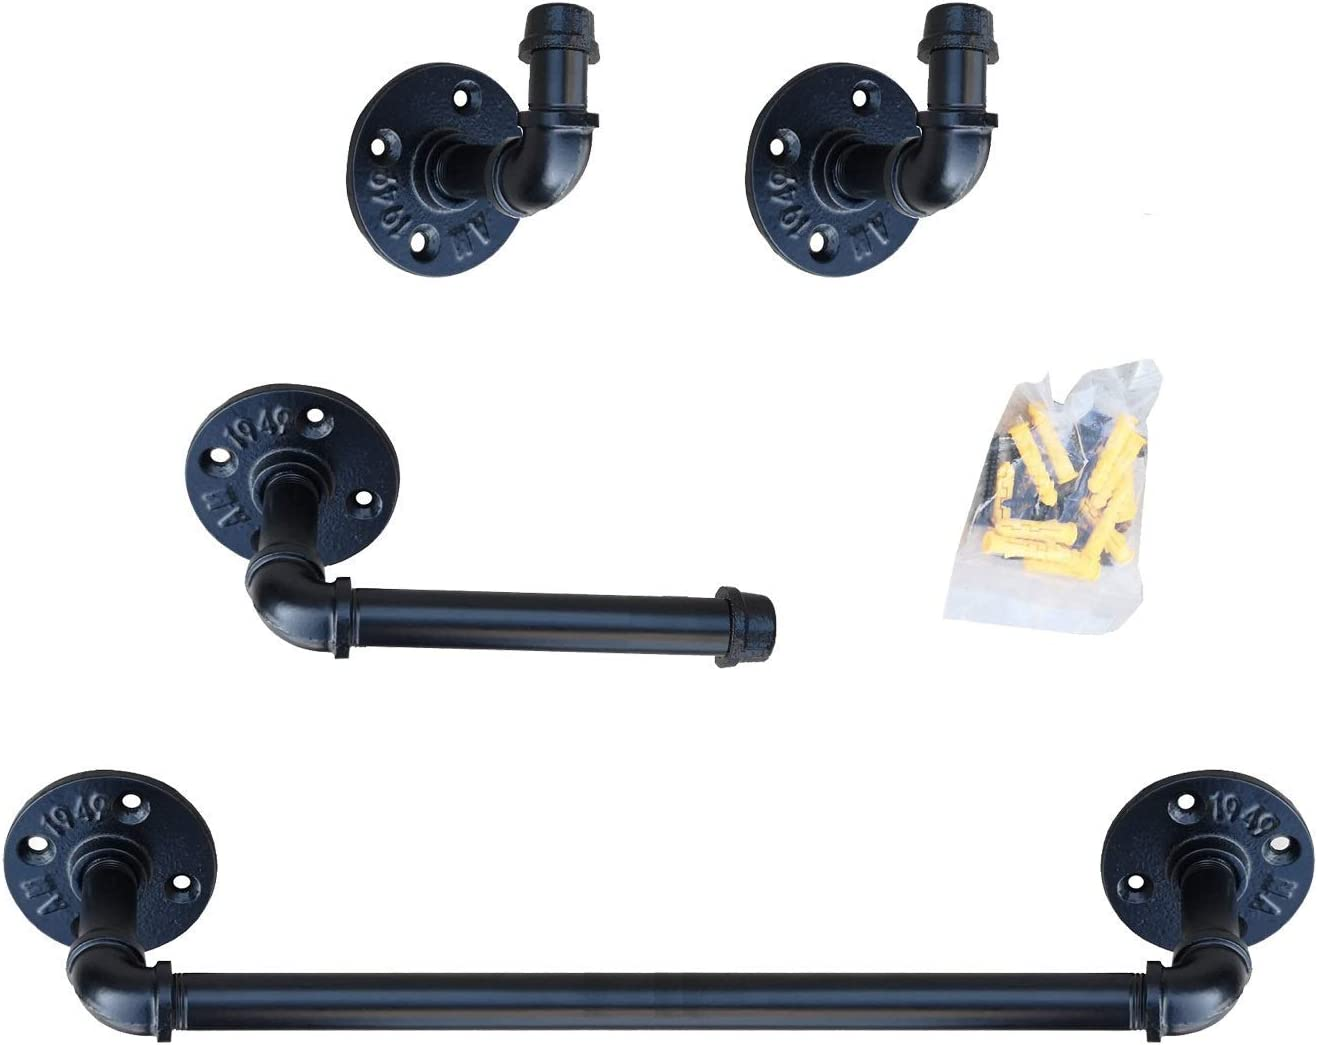 My Rustic Industrial Pipe Bathroom Hardware Fixture Set Heavy Duty DIY Wall Mount Accessories Kit Includes Robe Hook,18 Inch Towel Bar and Toilet Paper Holder,Coated Finish: Home & Kitchen